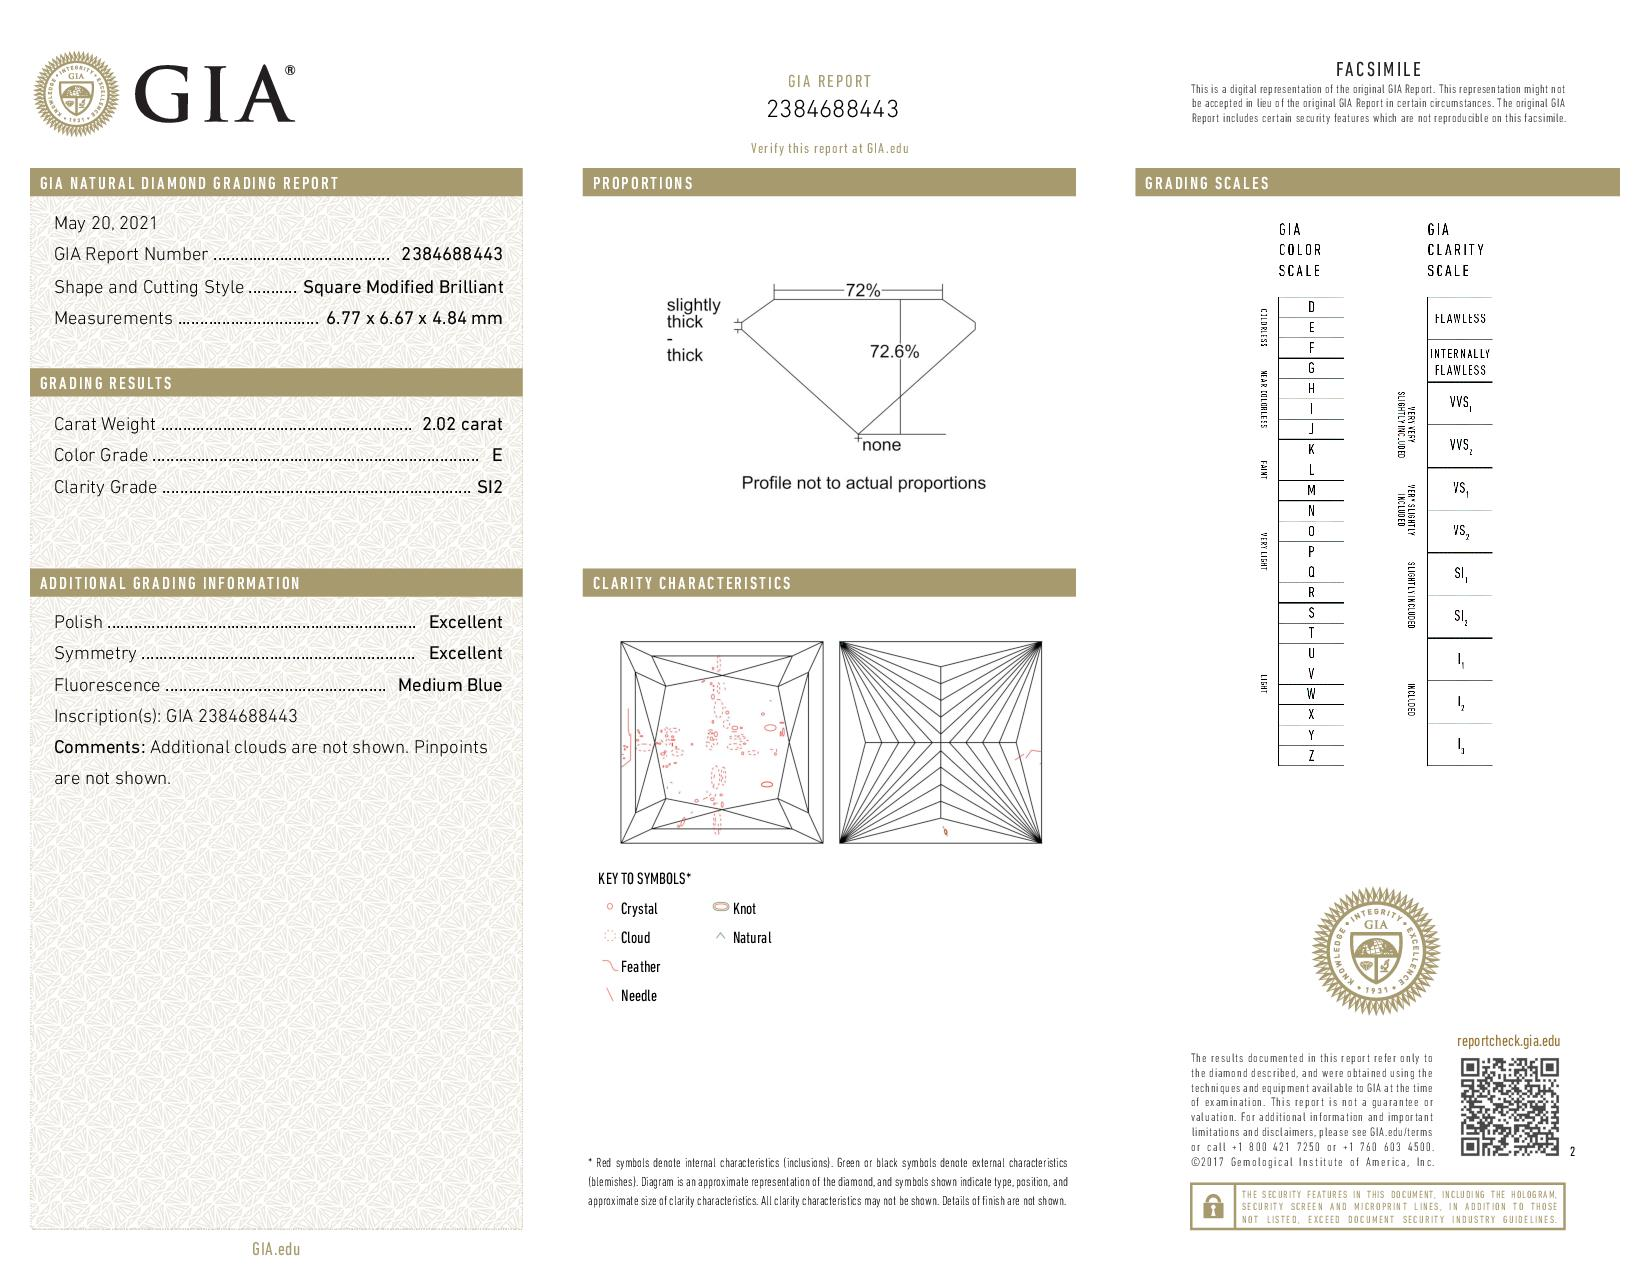 This is a 2.02 carat princess shape, E color, SI2 clarity natural diamond accompanied by a GIA grading report.